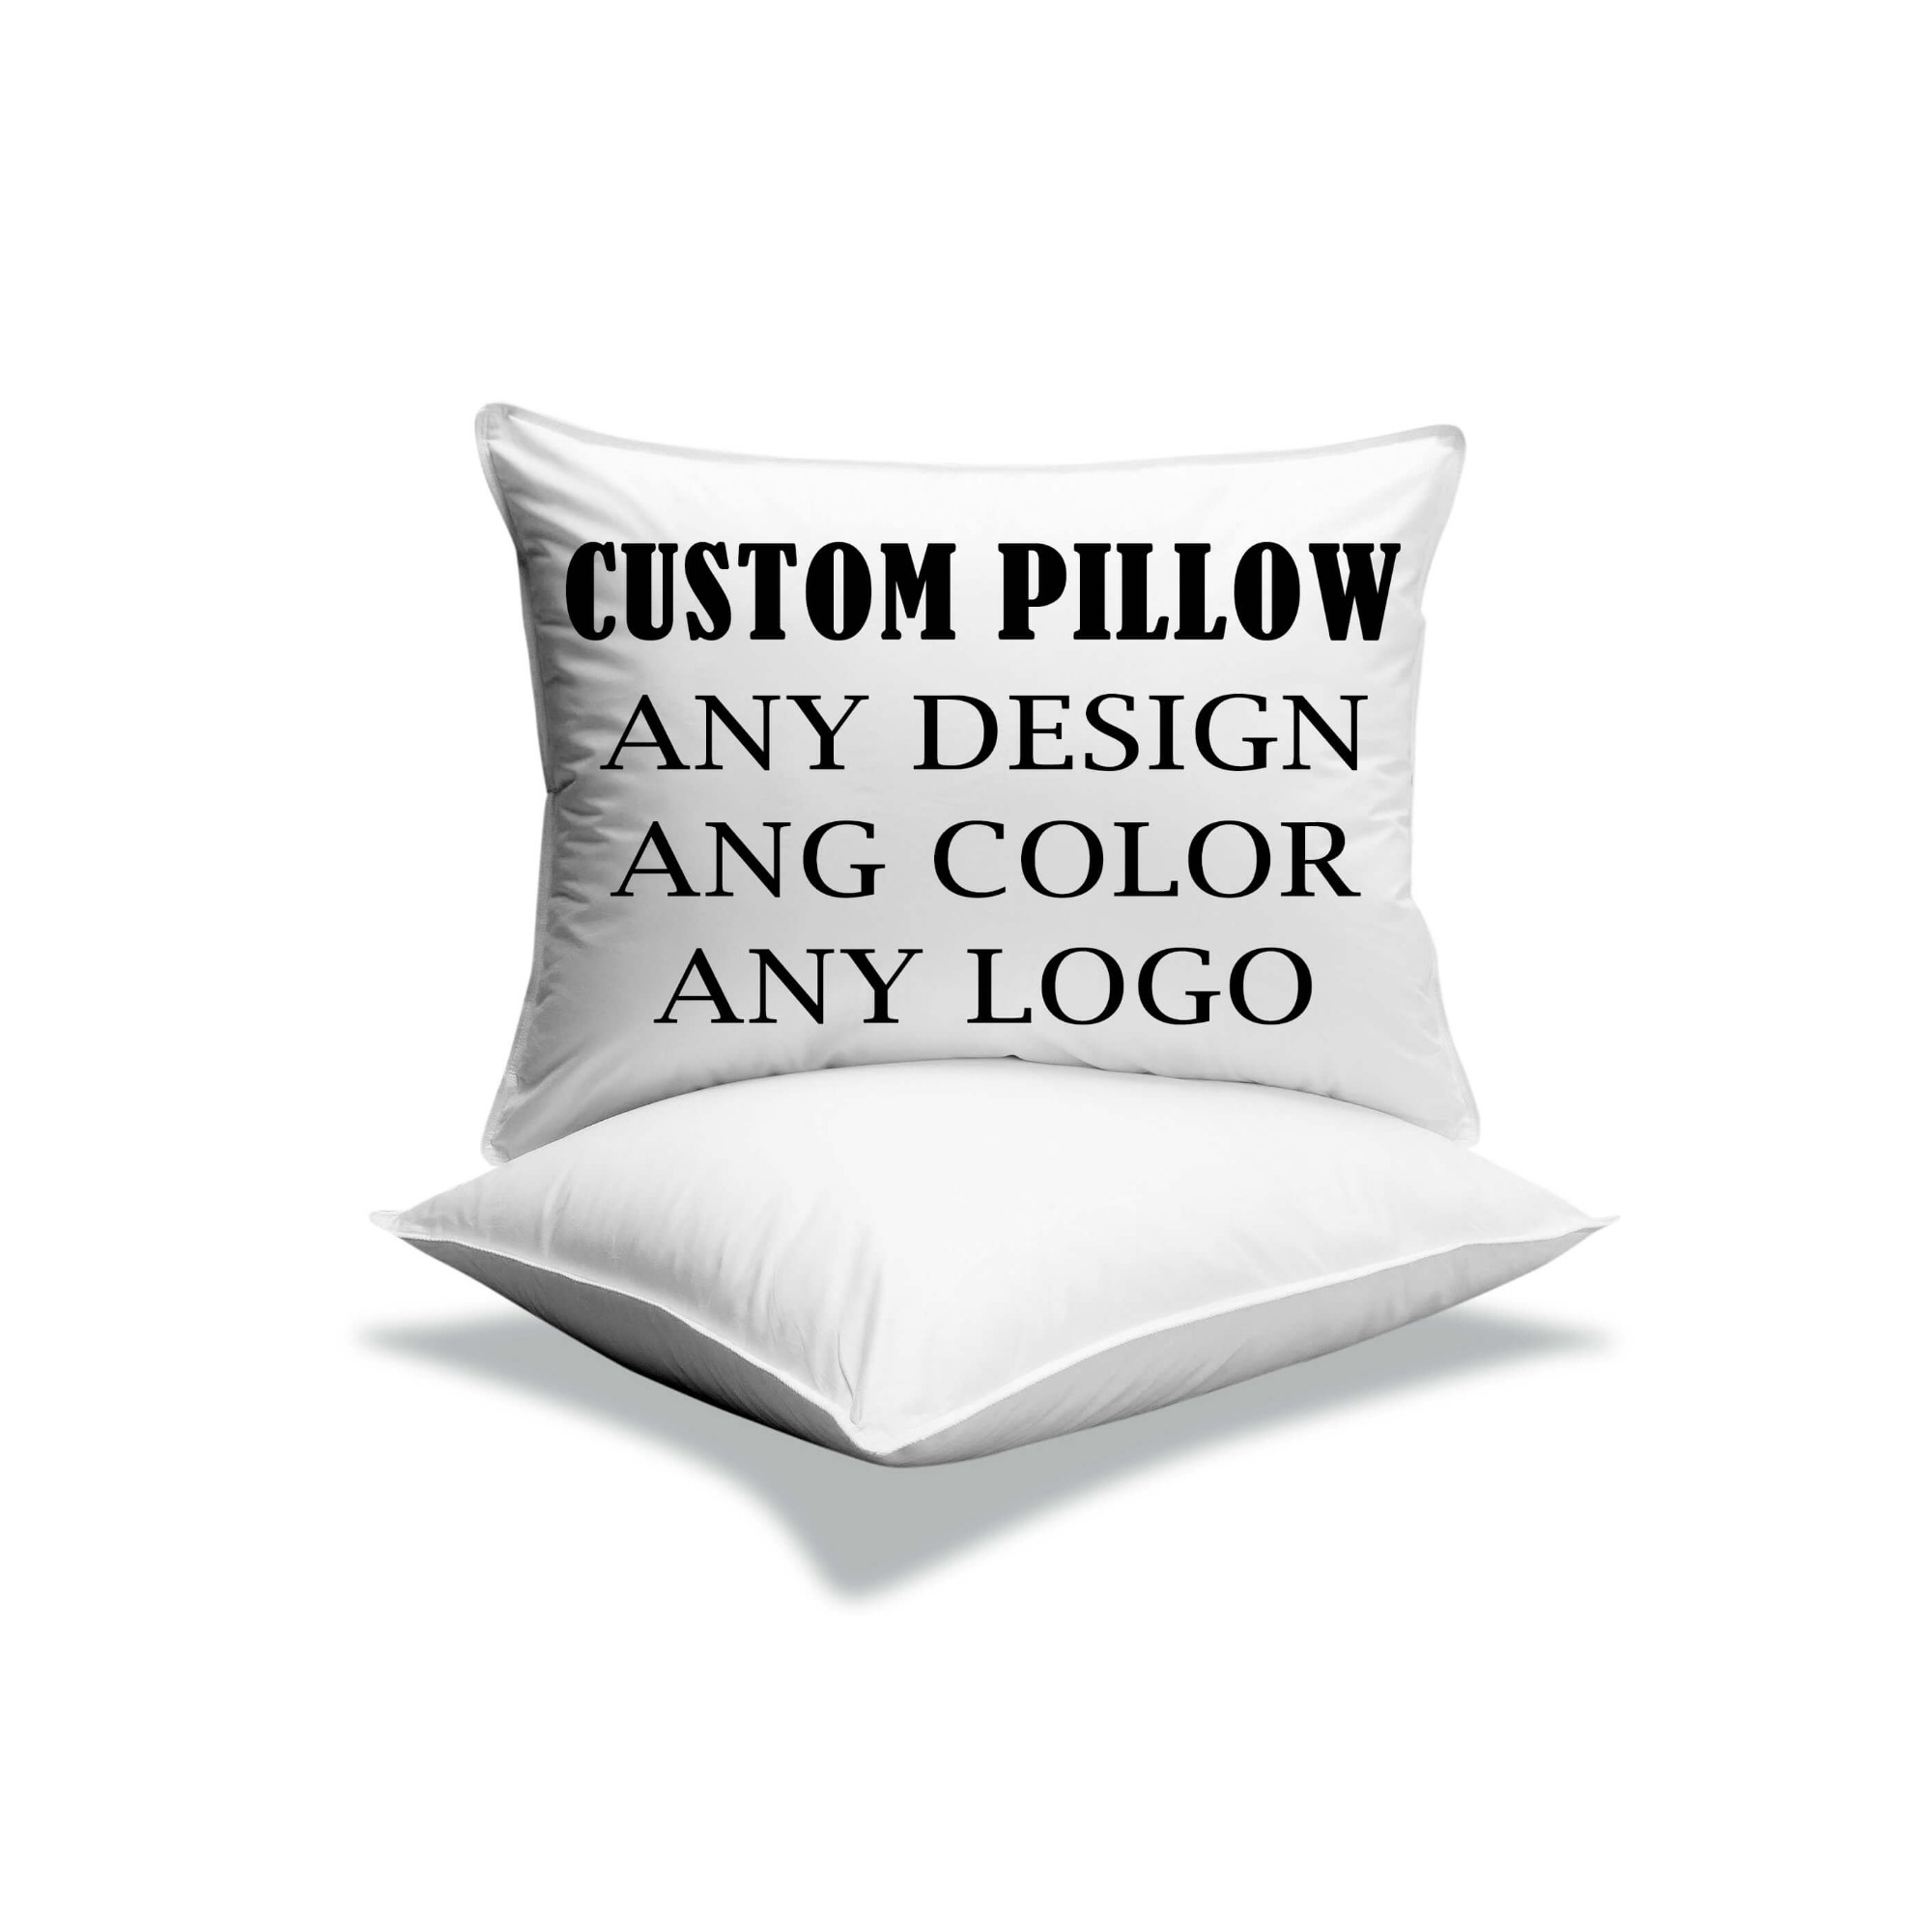 Sofa Pillows Digital Printed Cushion for Sofa